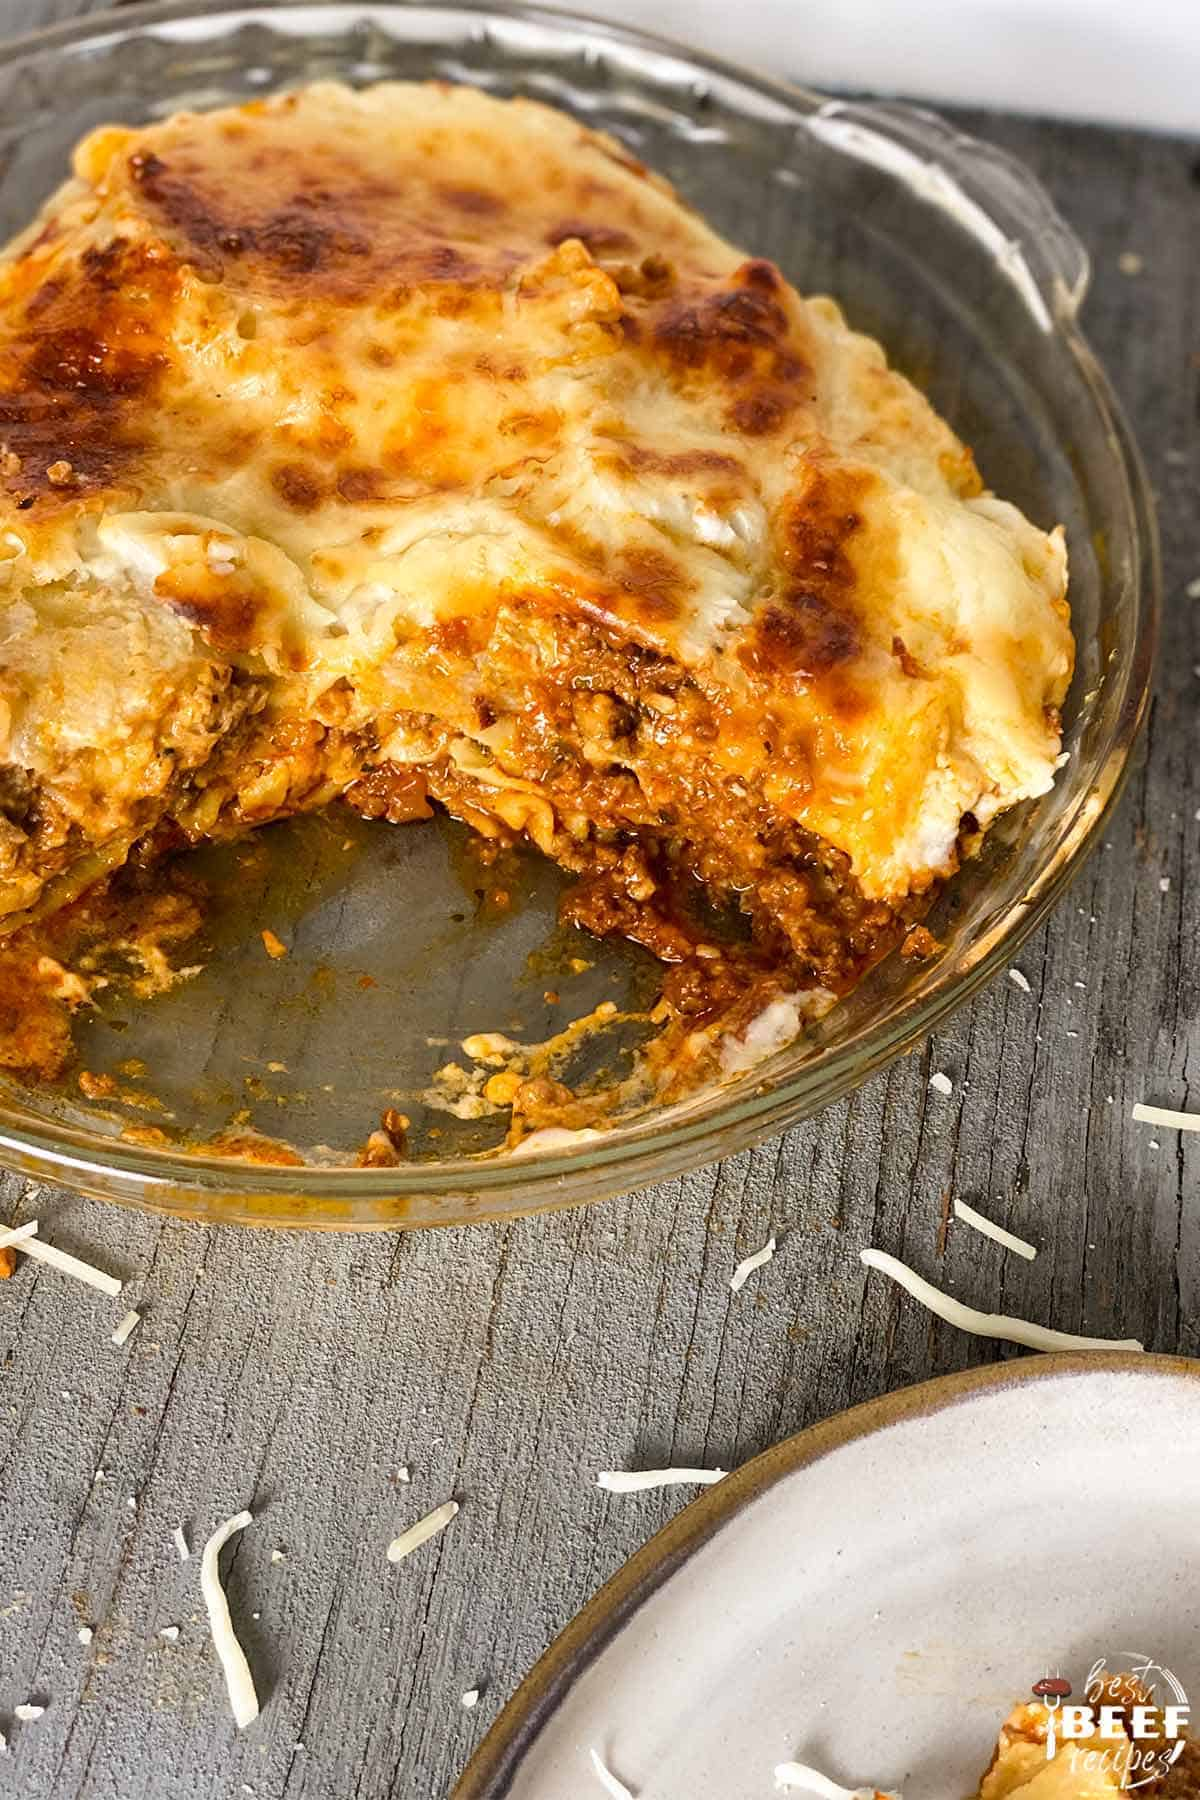 Beef lasagna in a glass dish with a slice missing